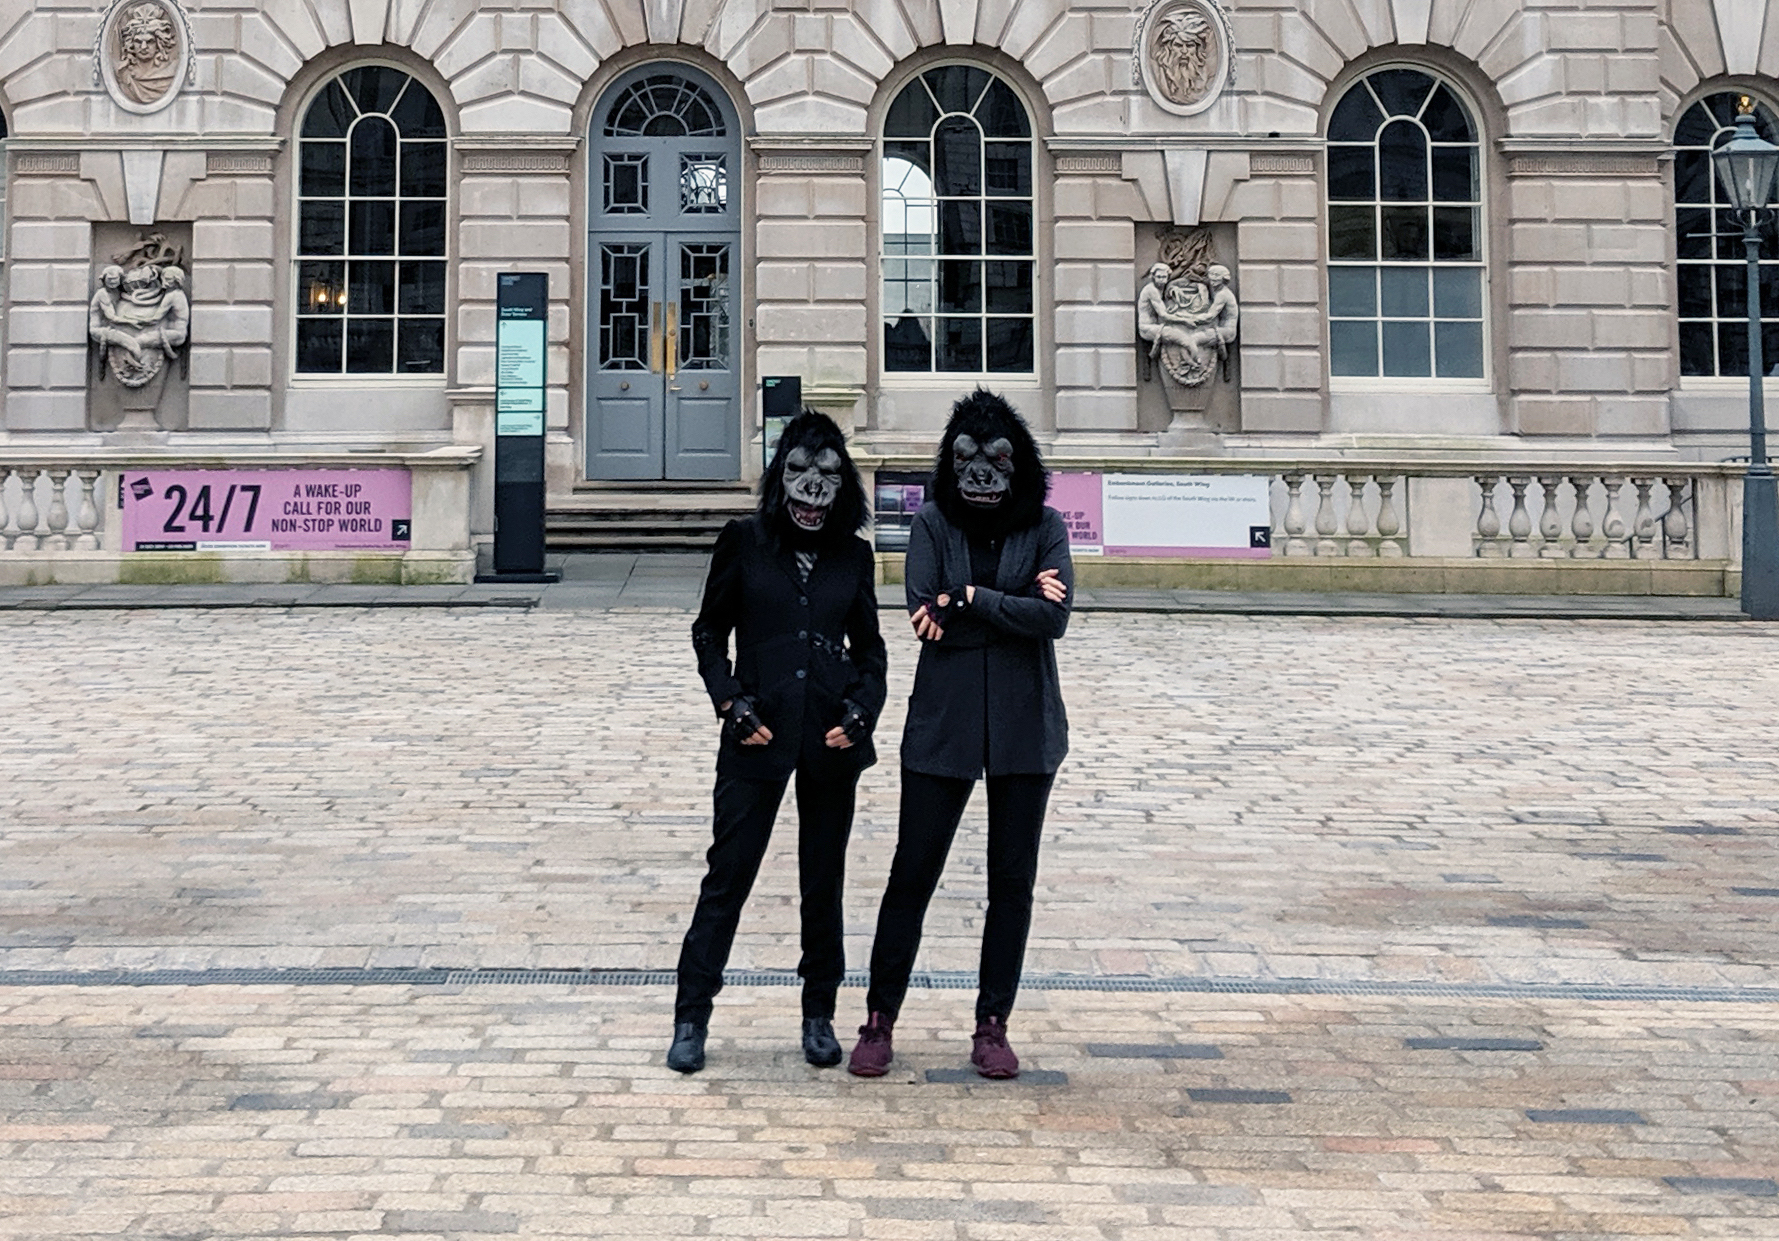 Two people in gorilla masks stand in the courtyard of Somerset House